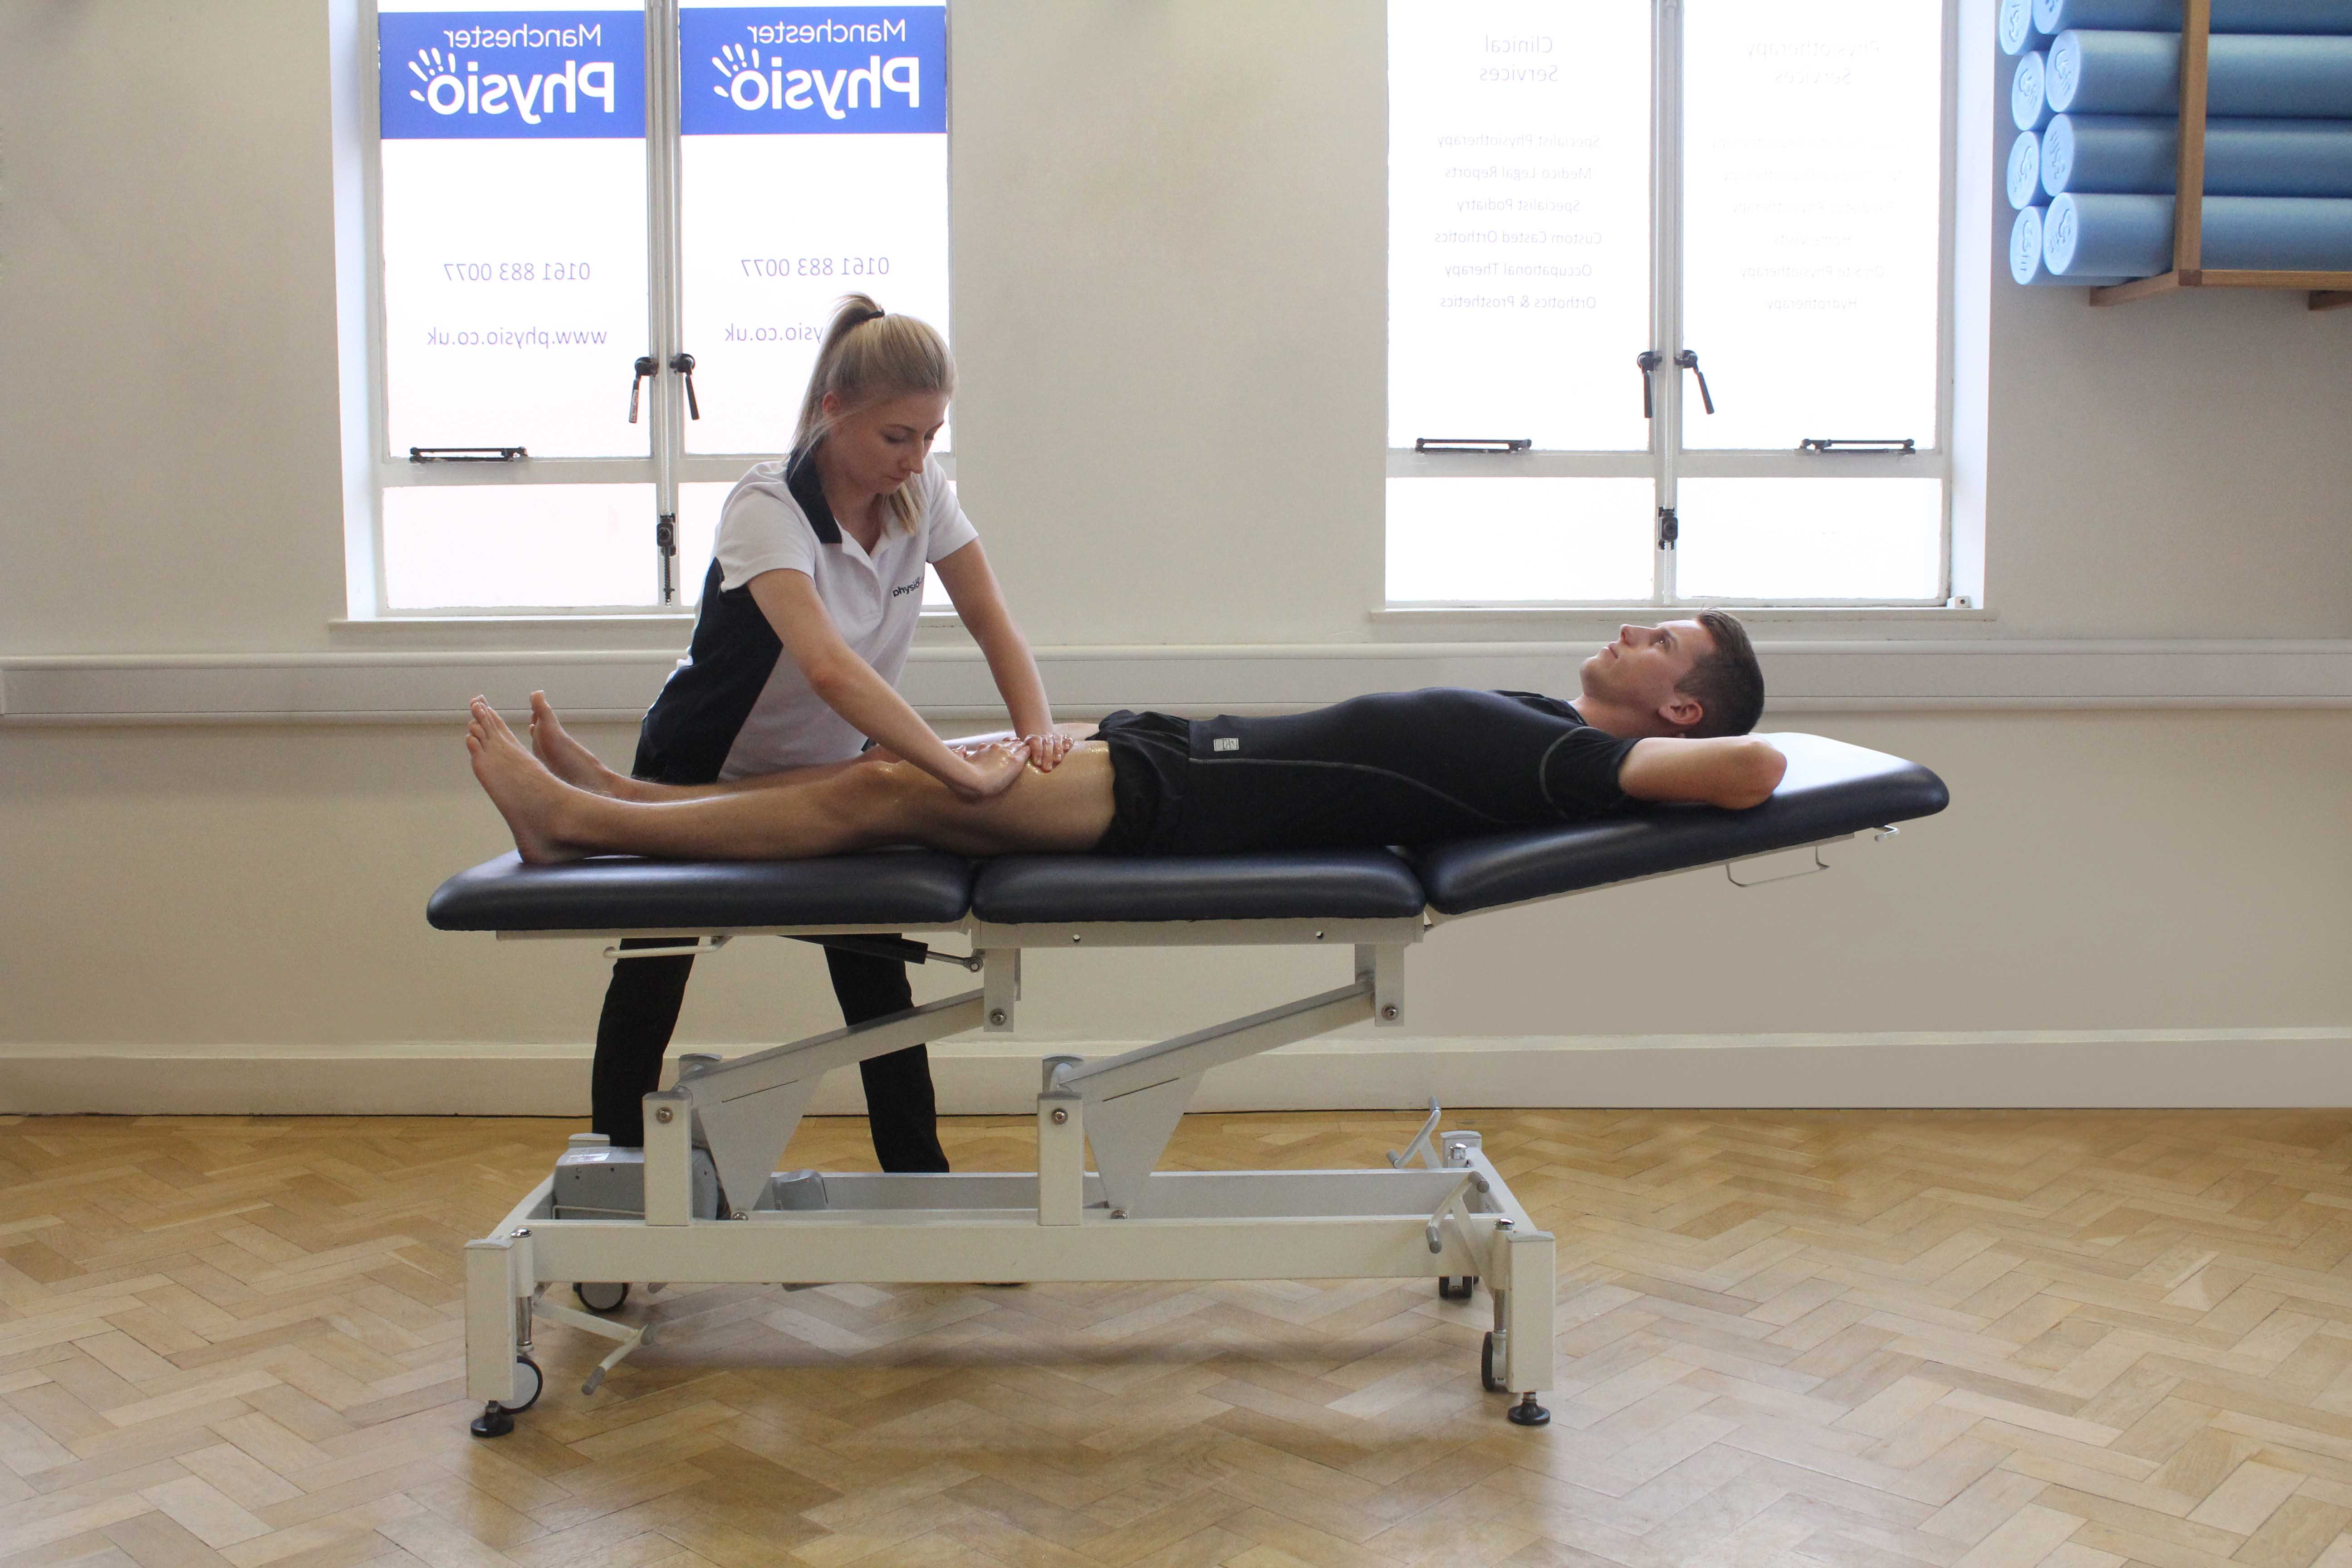 Soft Tissue Massage targeting quadriceps muscle group